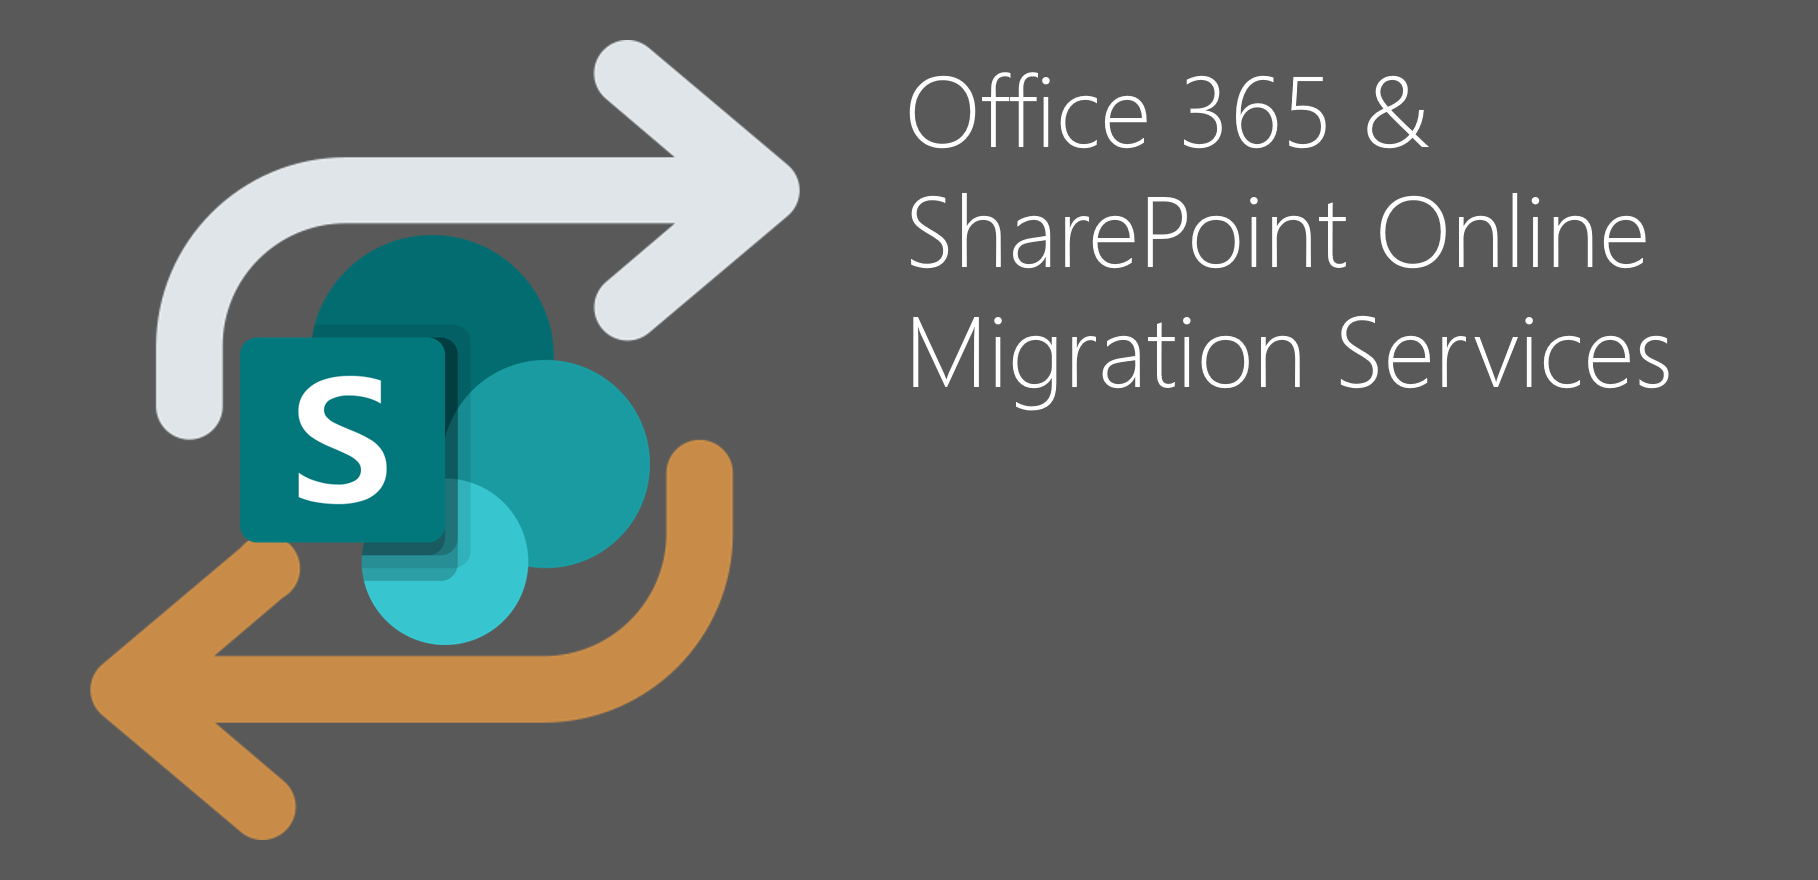 I will conduct a SharePoint Online & Office 365 Migration